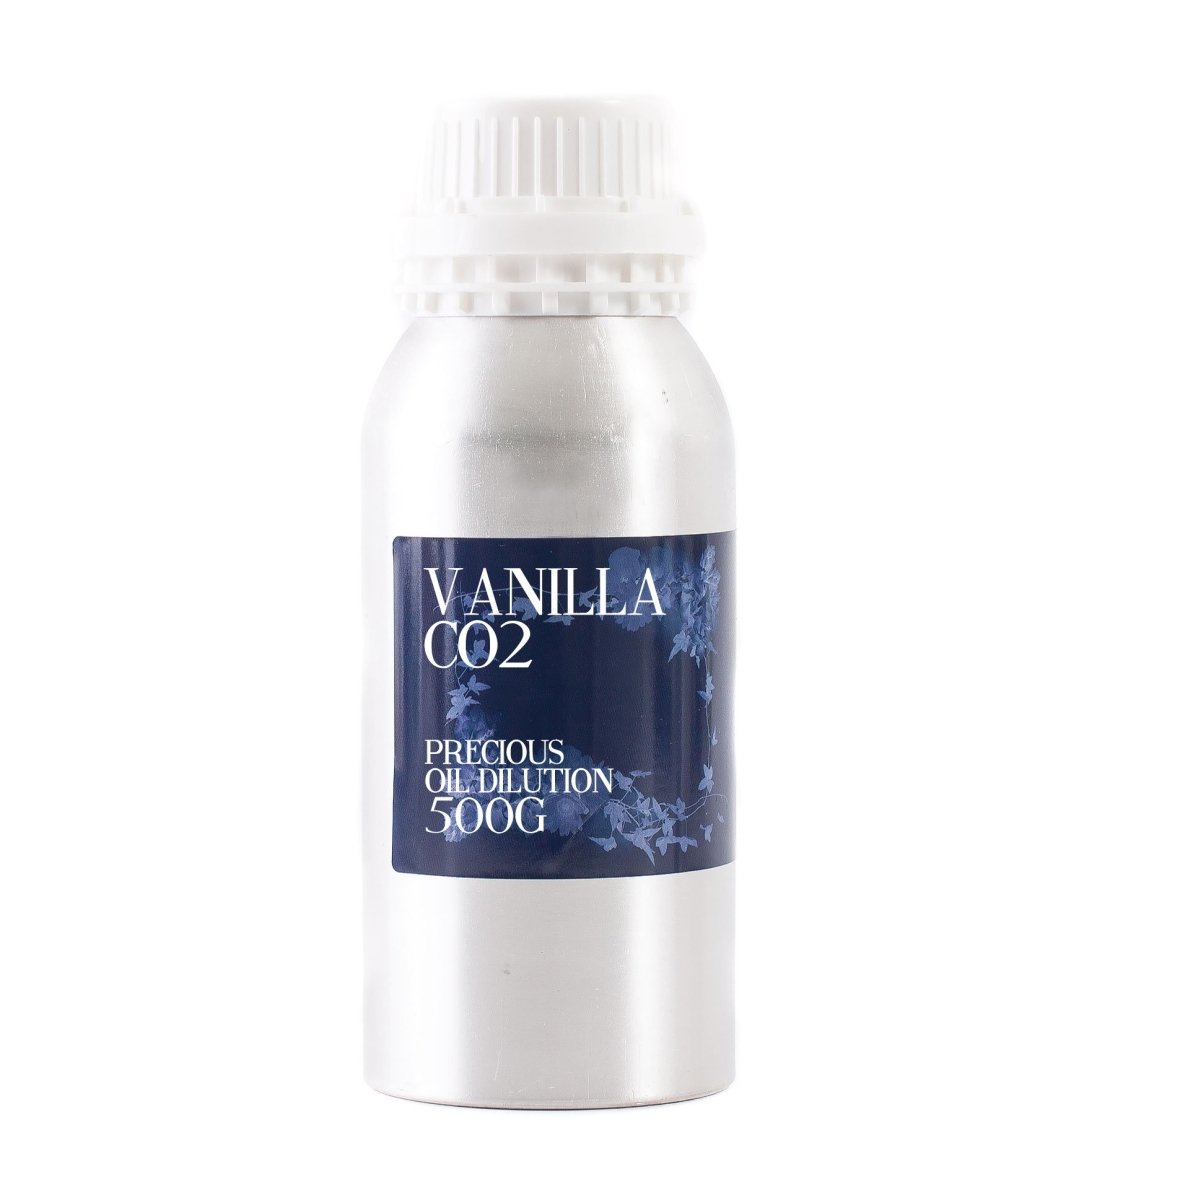 Vanilla CO2 Essential Oil Dilution - Mystic Moments UK